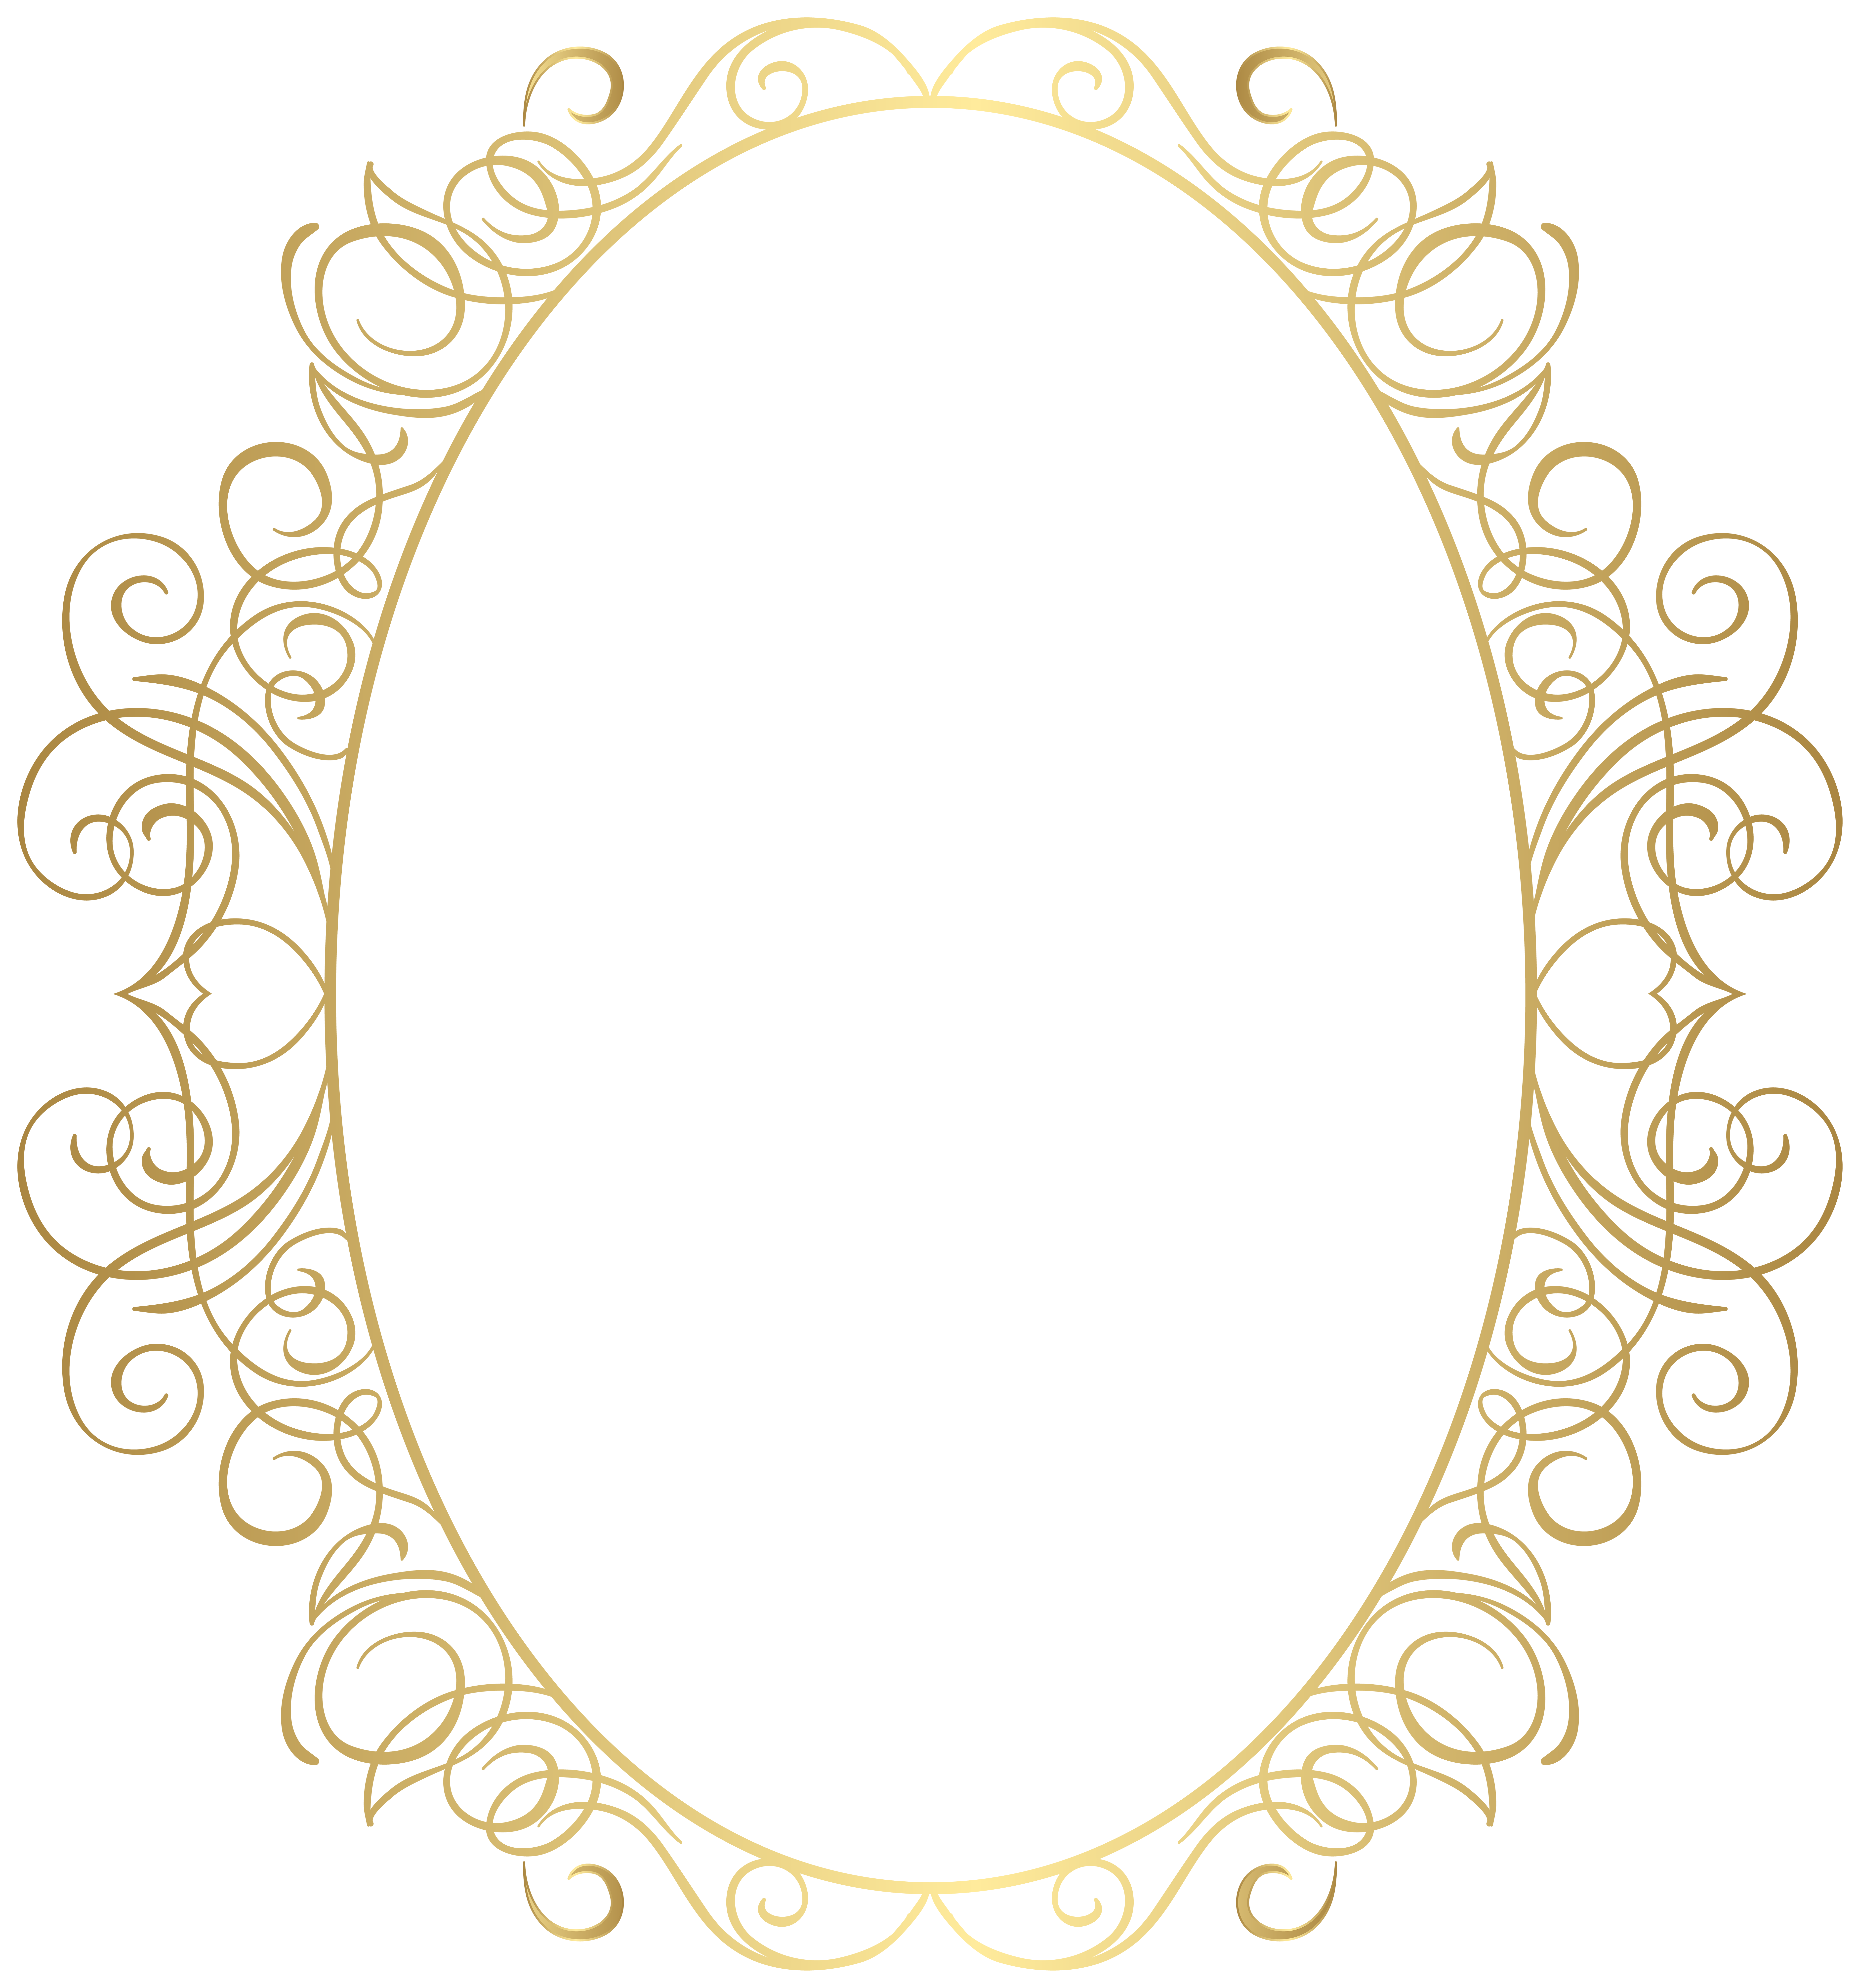 Oval Border Frame PNG Clipart.